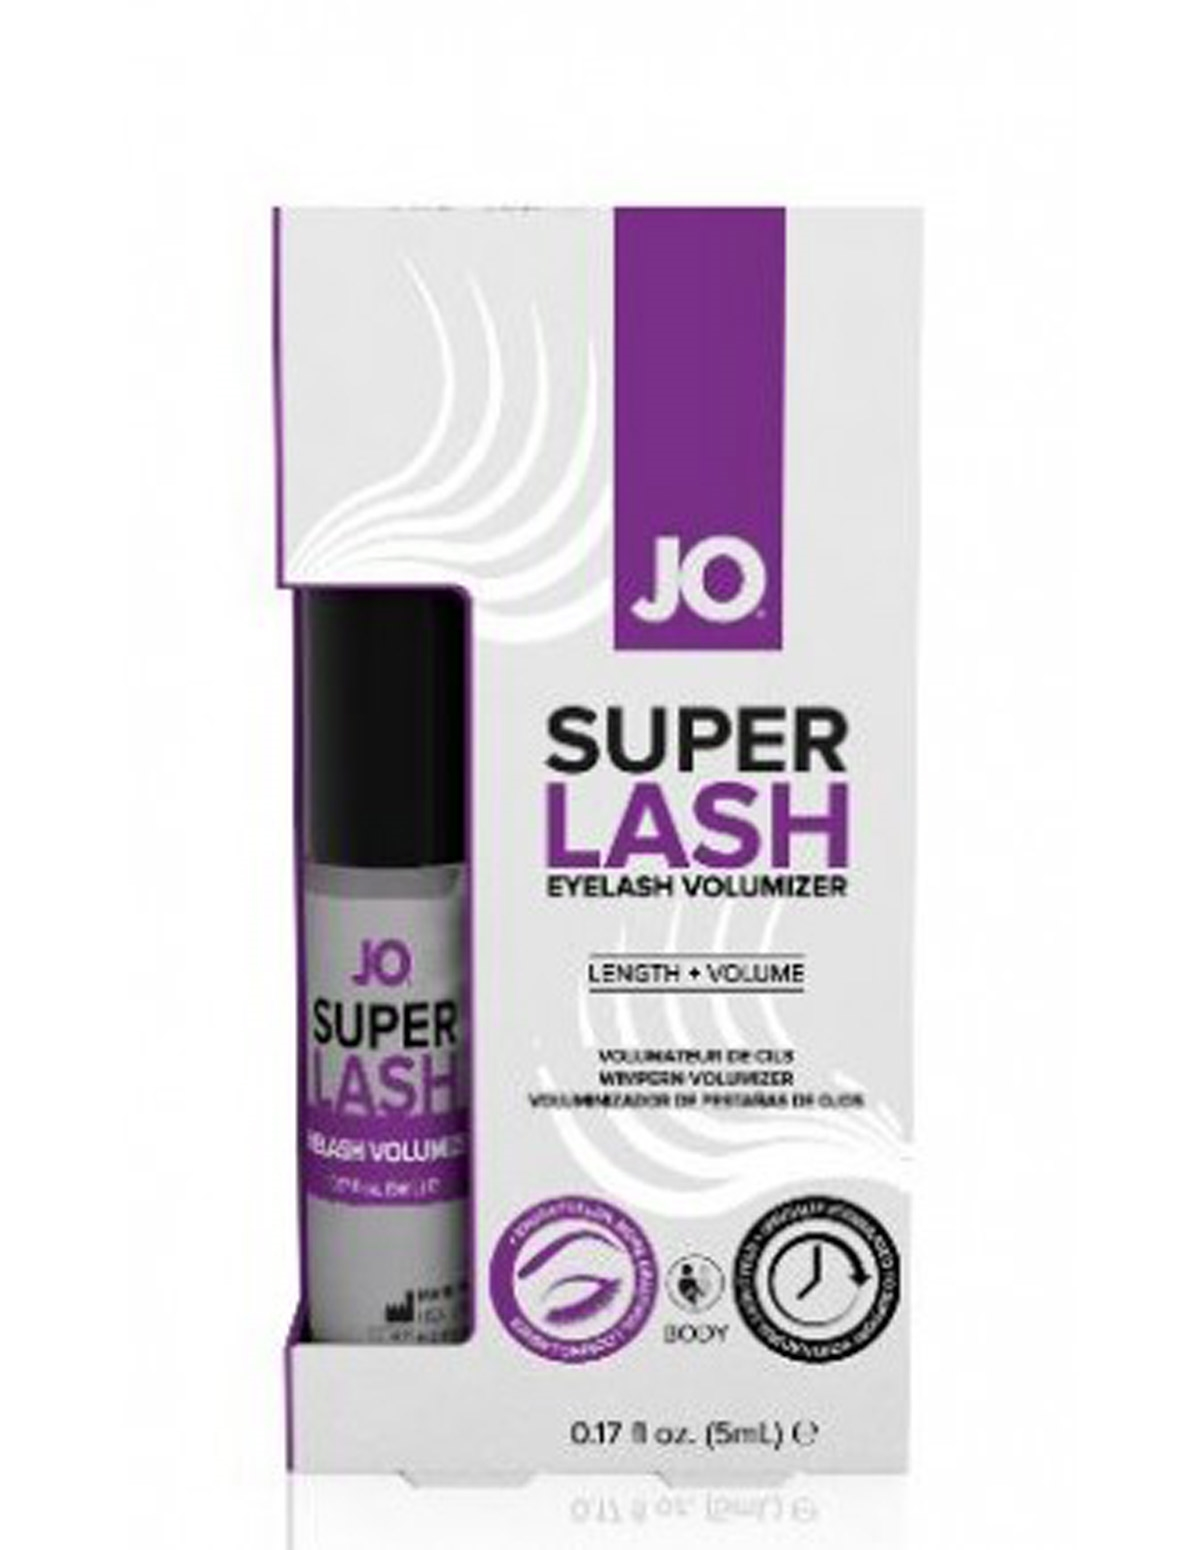 Super Lash Eyelash Volumizer 5Ml